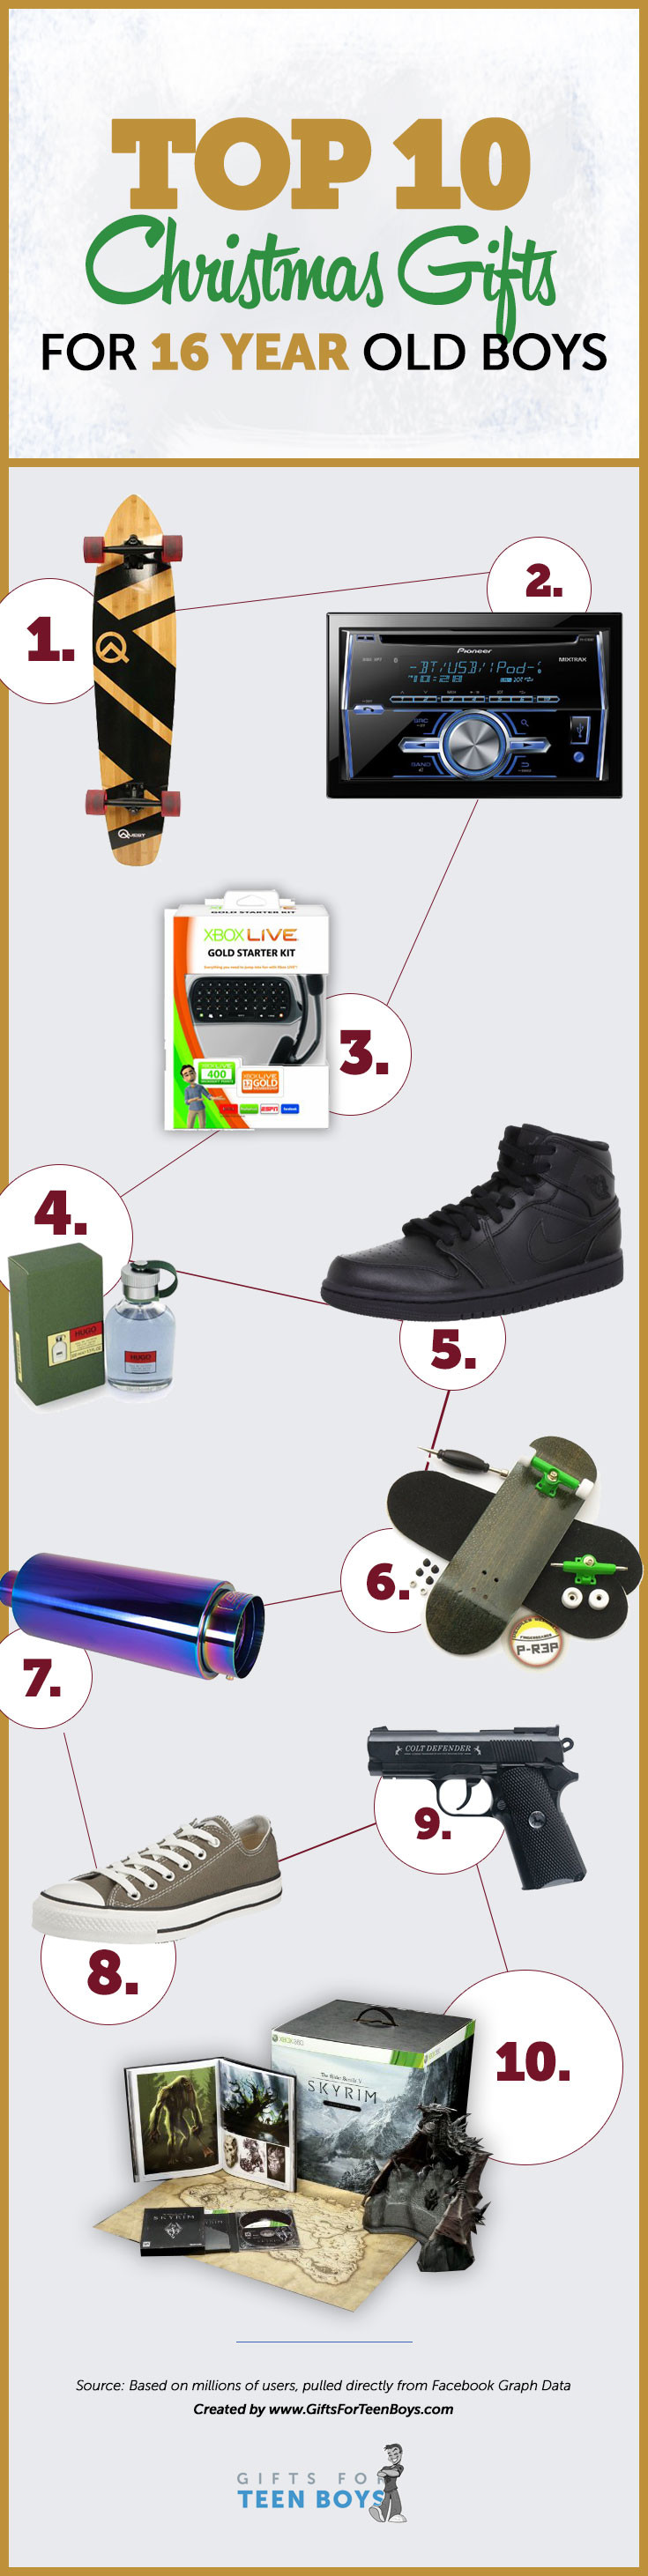 Best ideas about Gift Ideas For 17 Year Old Boys . Save or Pin Christmas Gifts 16 Year Old Boys Now.